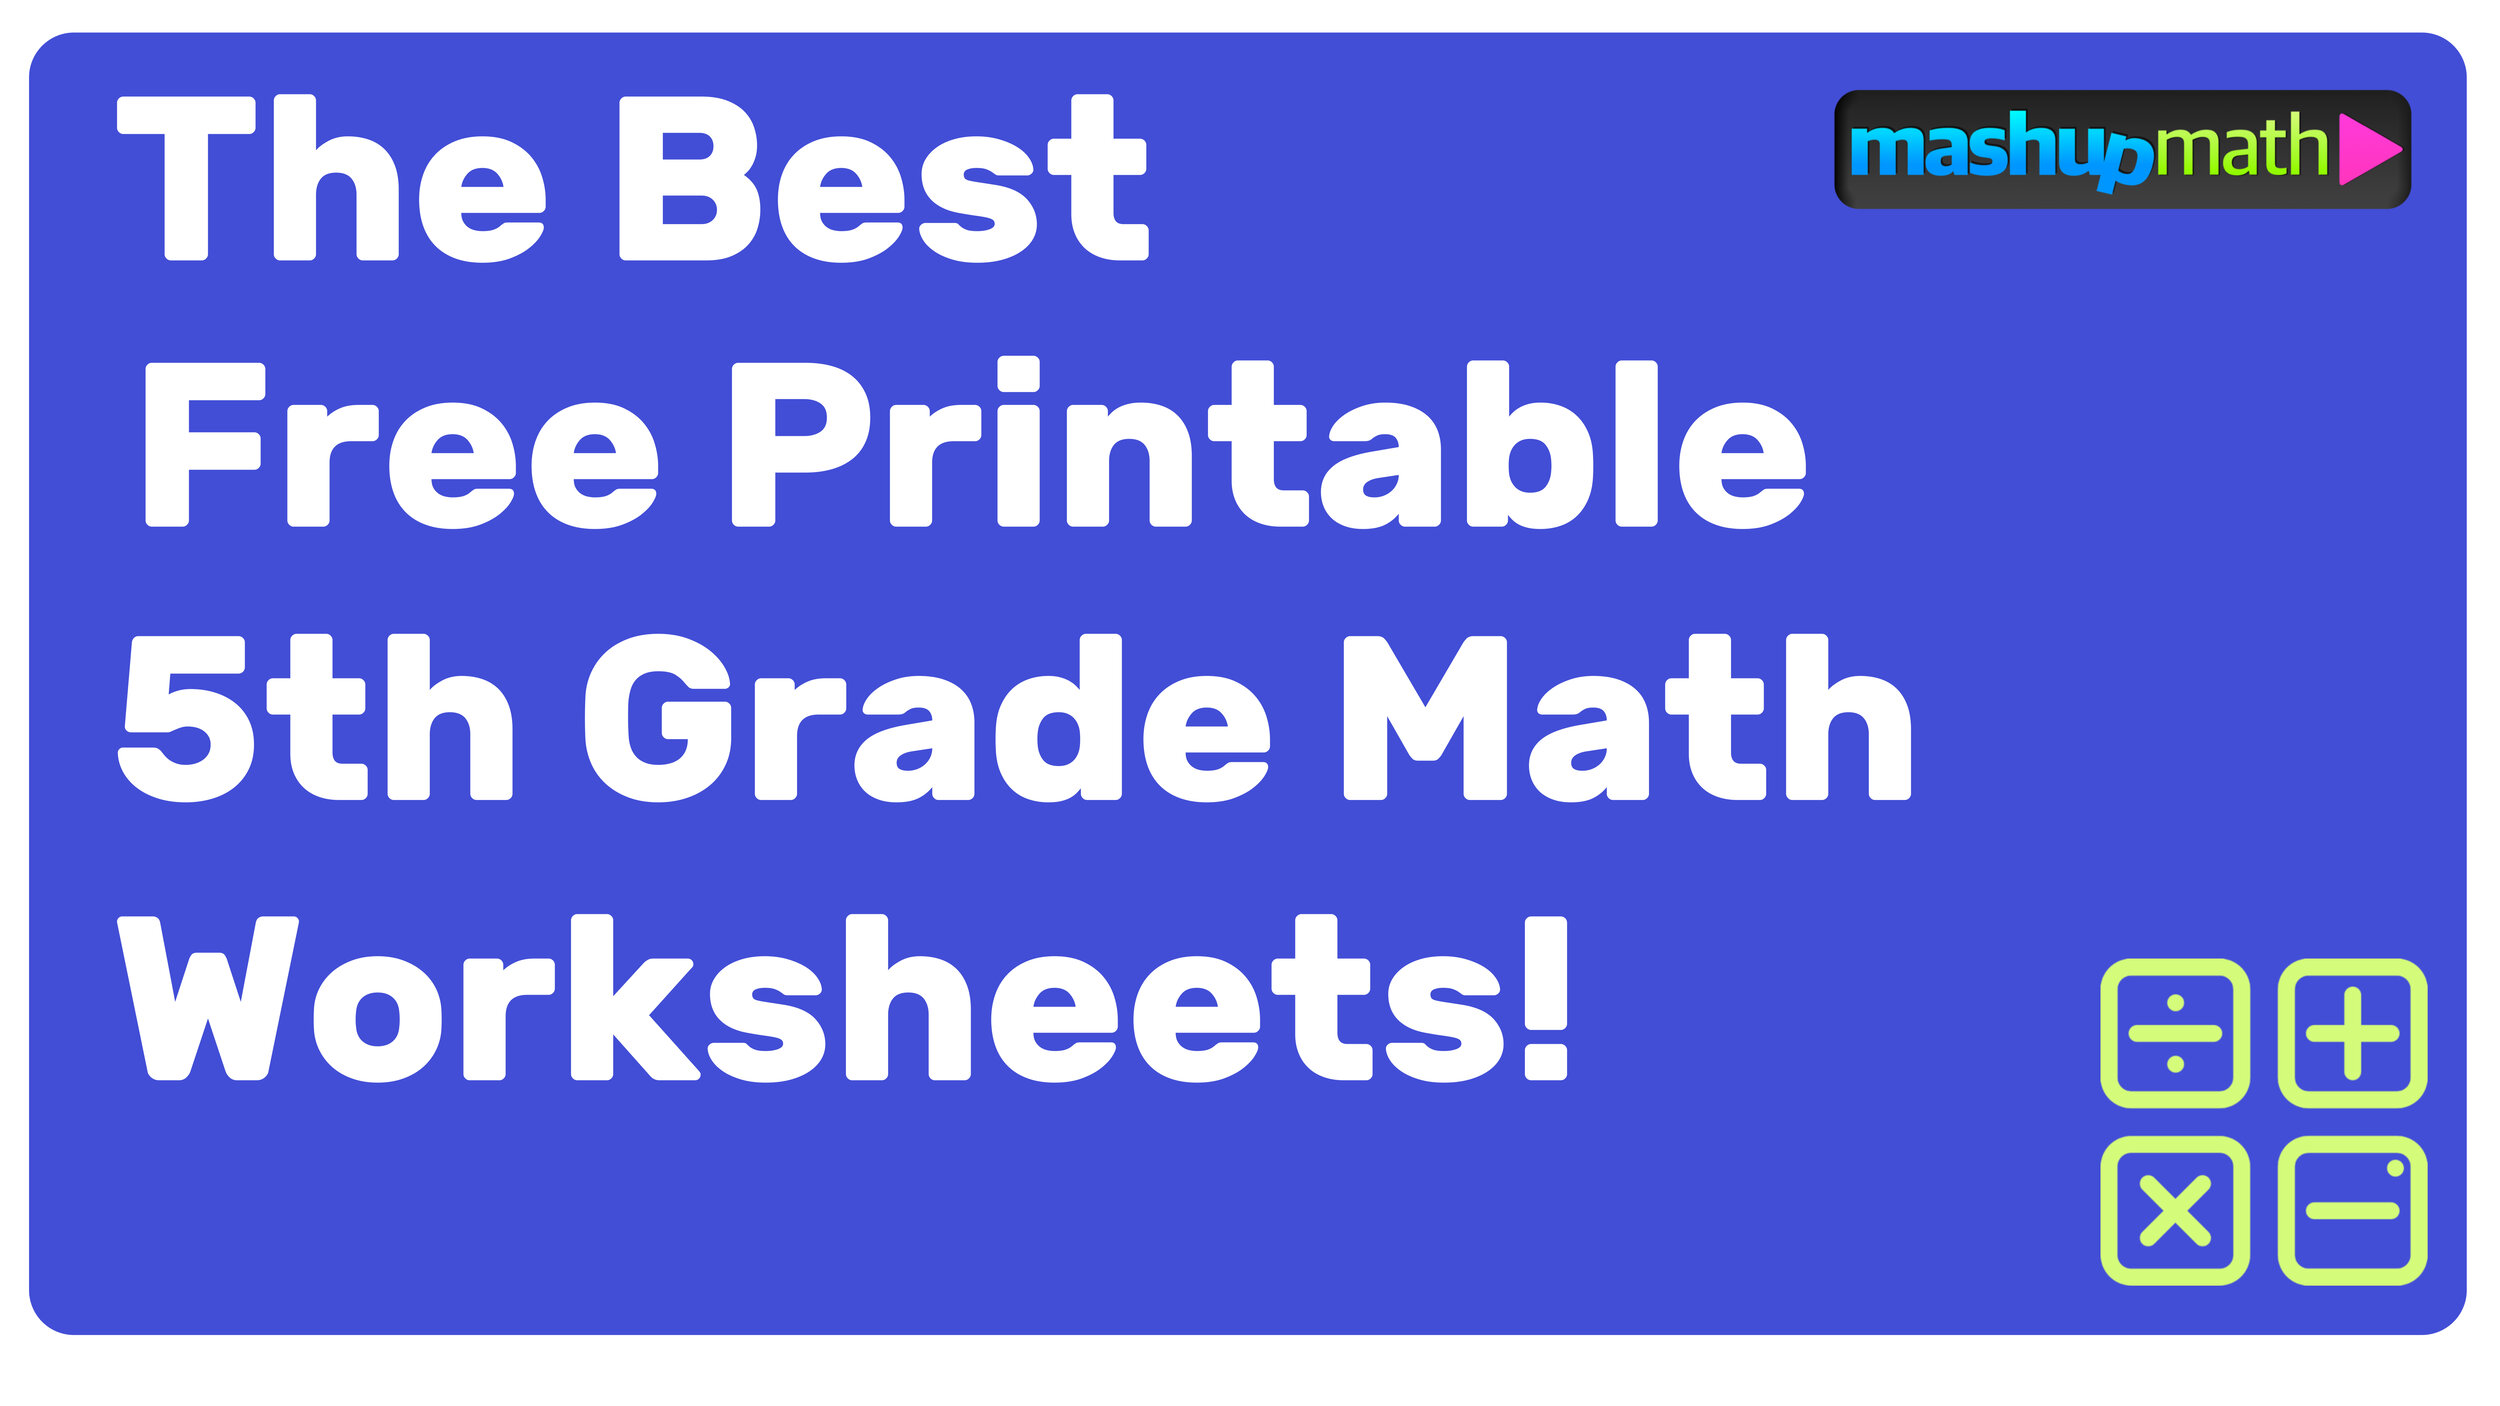 Free Printable 5th Grade Math Worksheets (with Answers!) — Mashup Math [ 1406 x 2500 Pixel ]